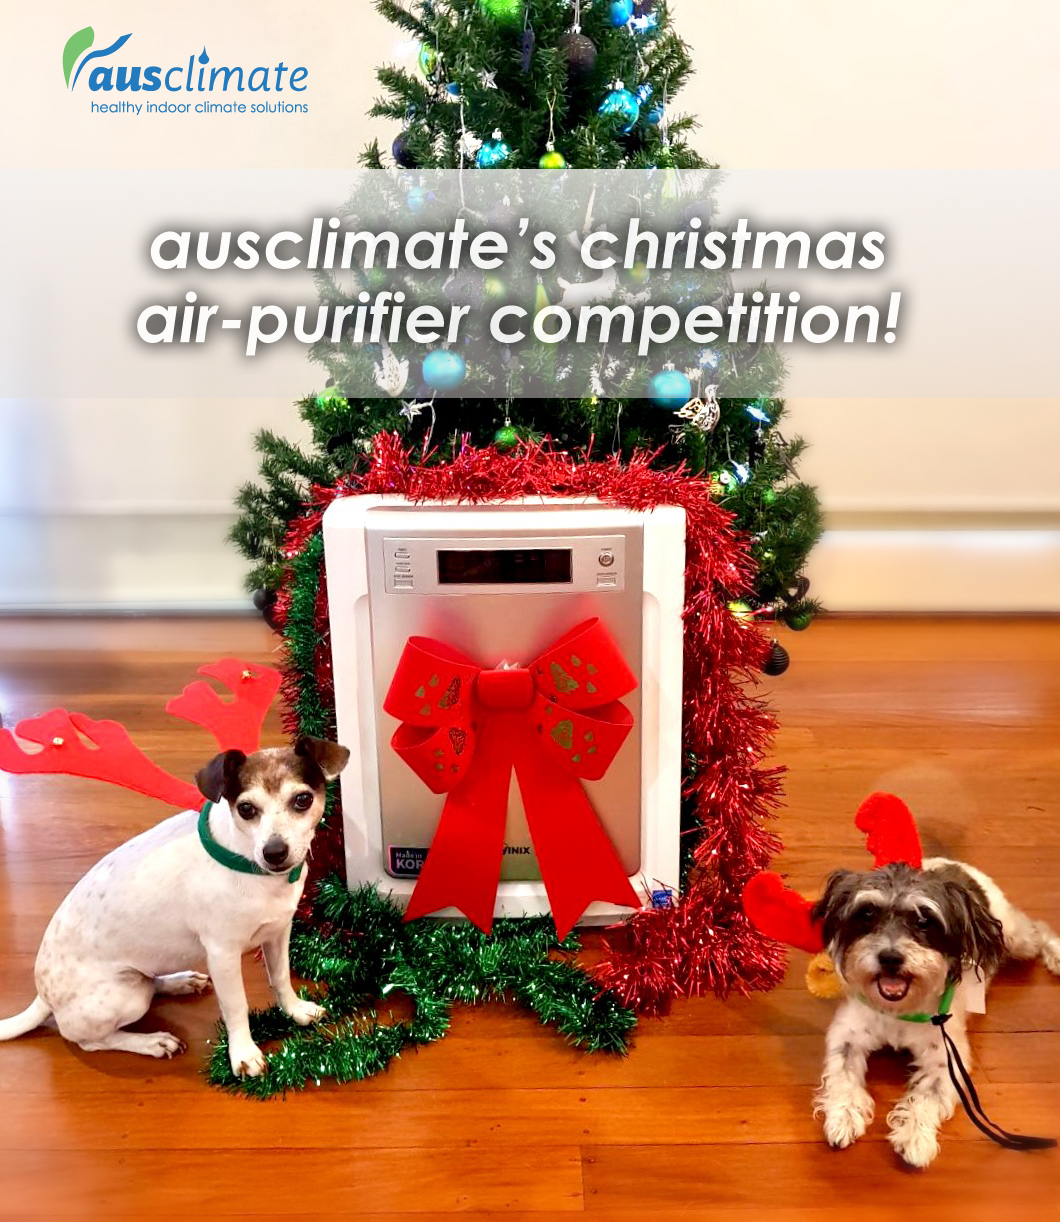 Christmas Air Purifier Competition Announcement